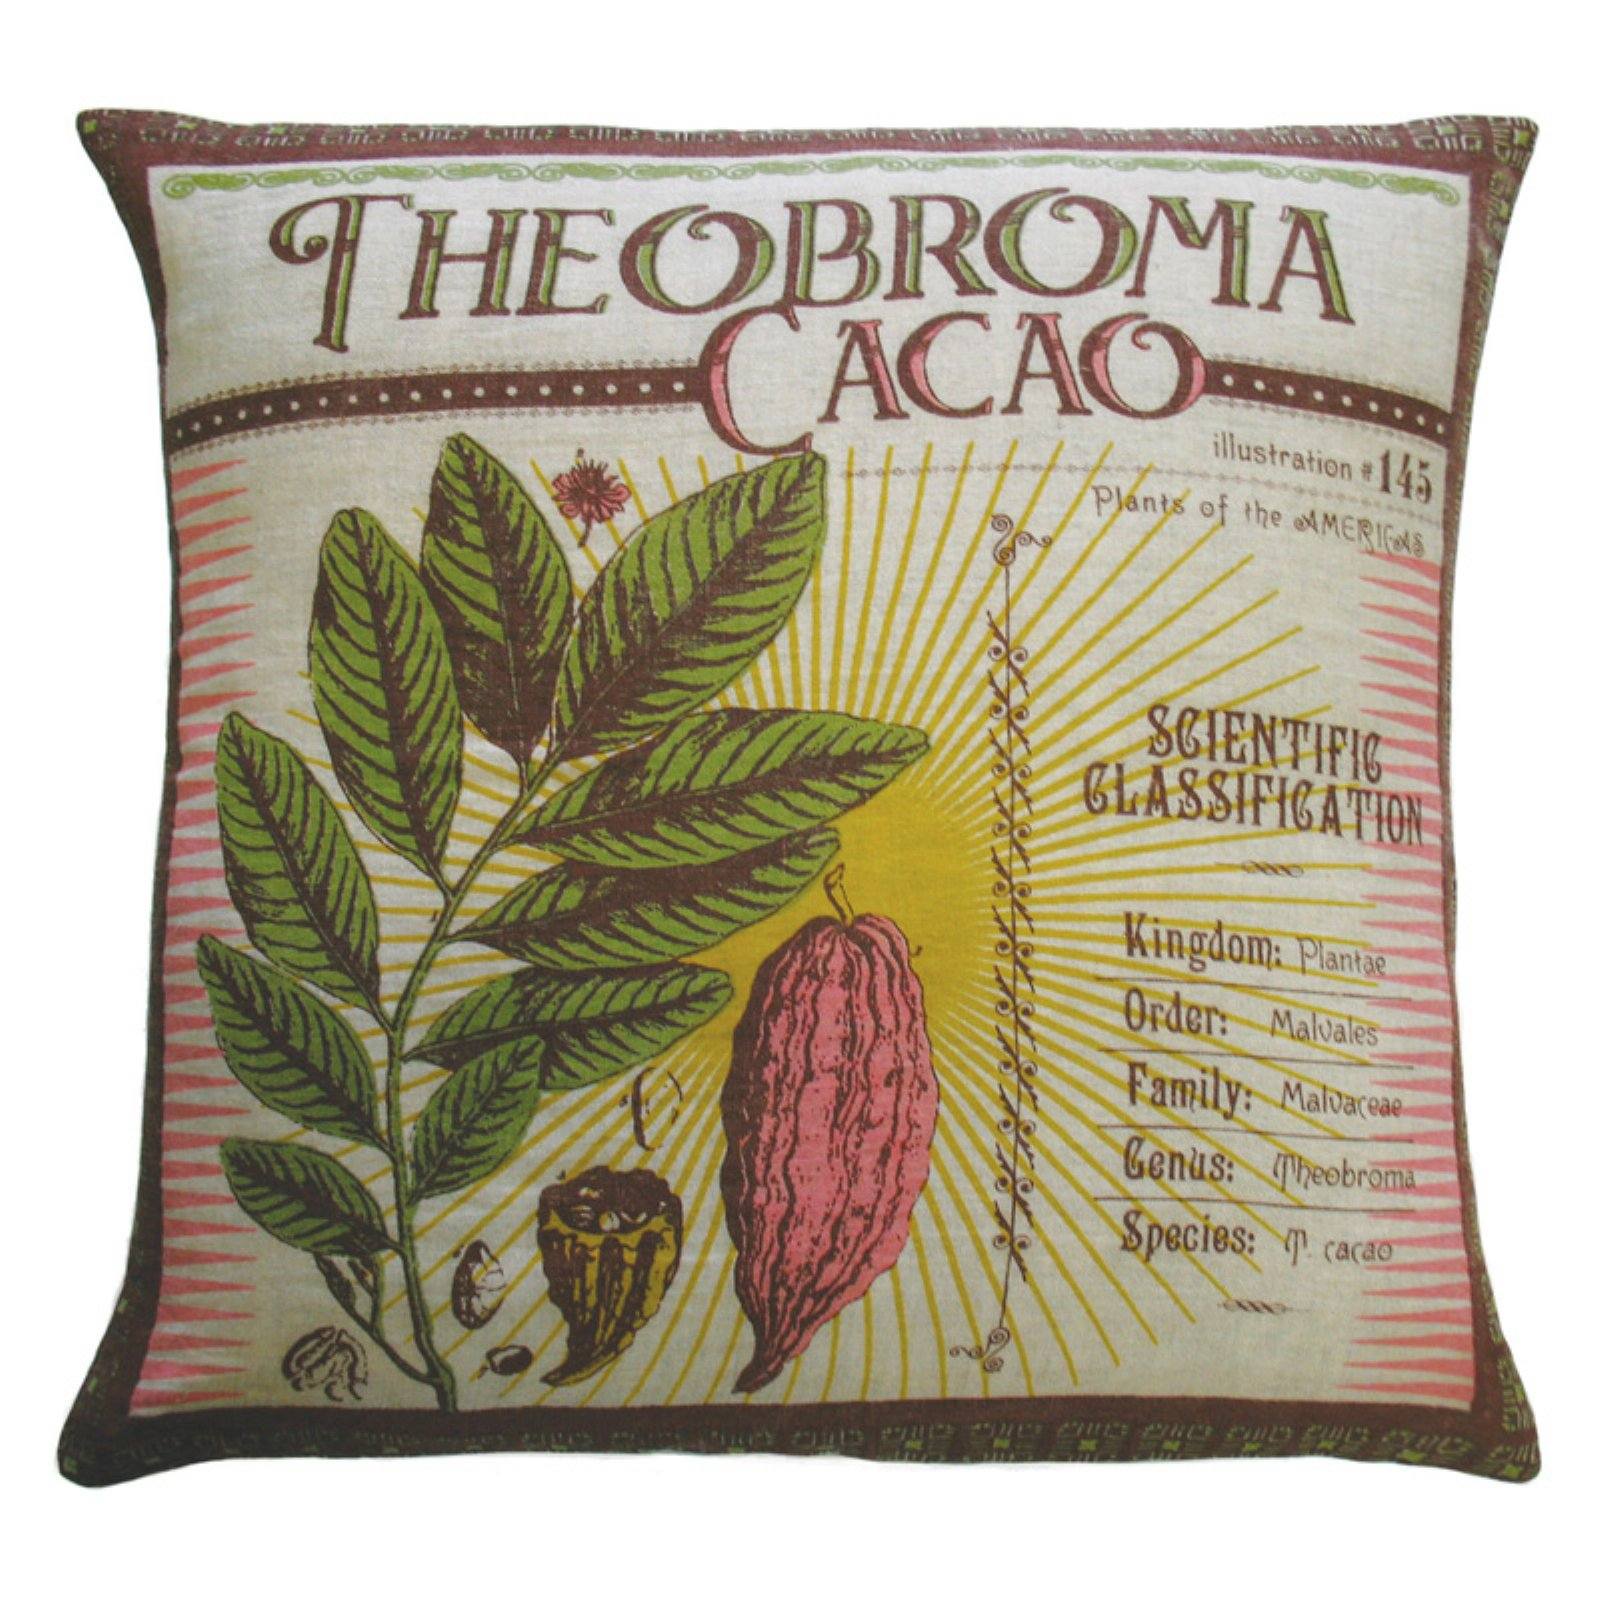 Koko Company Botanica Theobroma Cacao Decorative Pillow